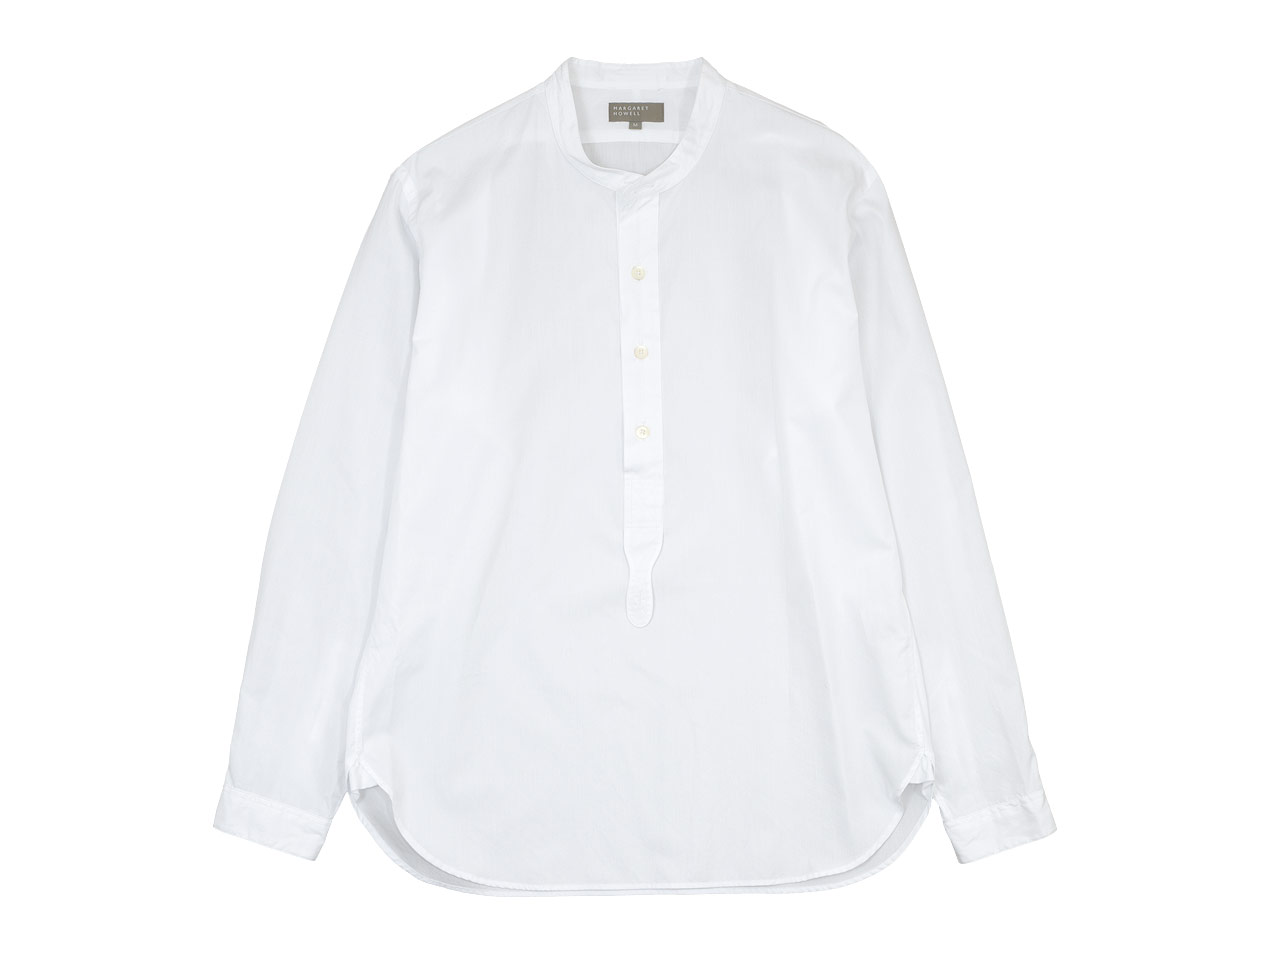 MARGARET HOWELL PLAIN COTTON POPLIN P/O SHIRTS